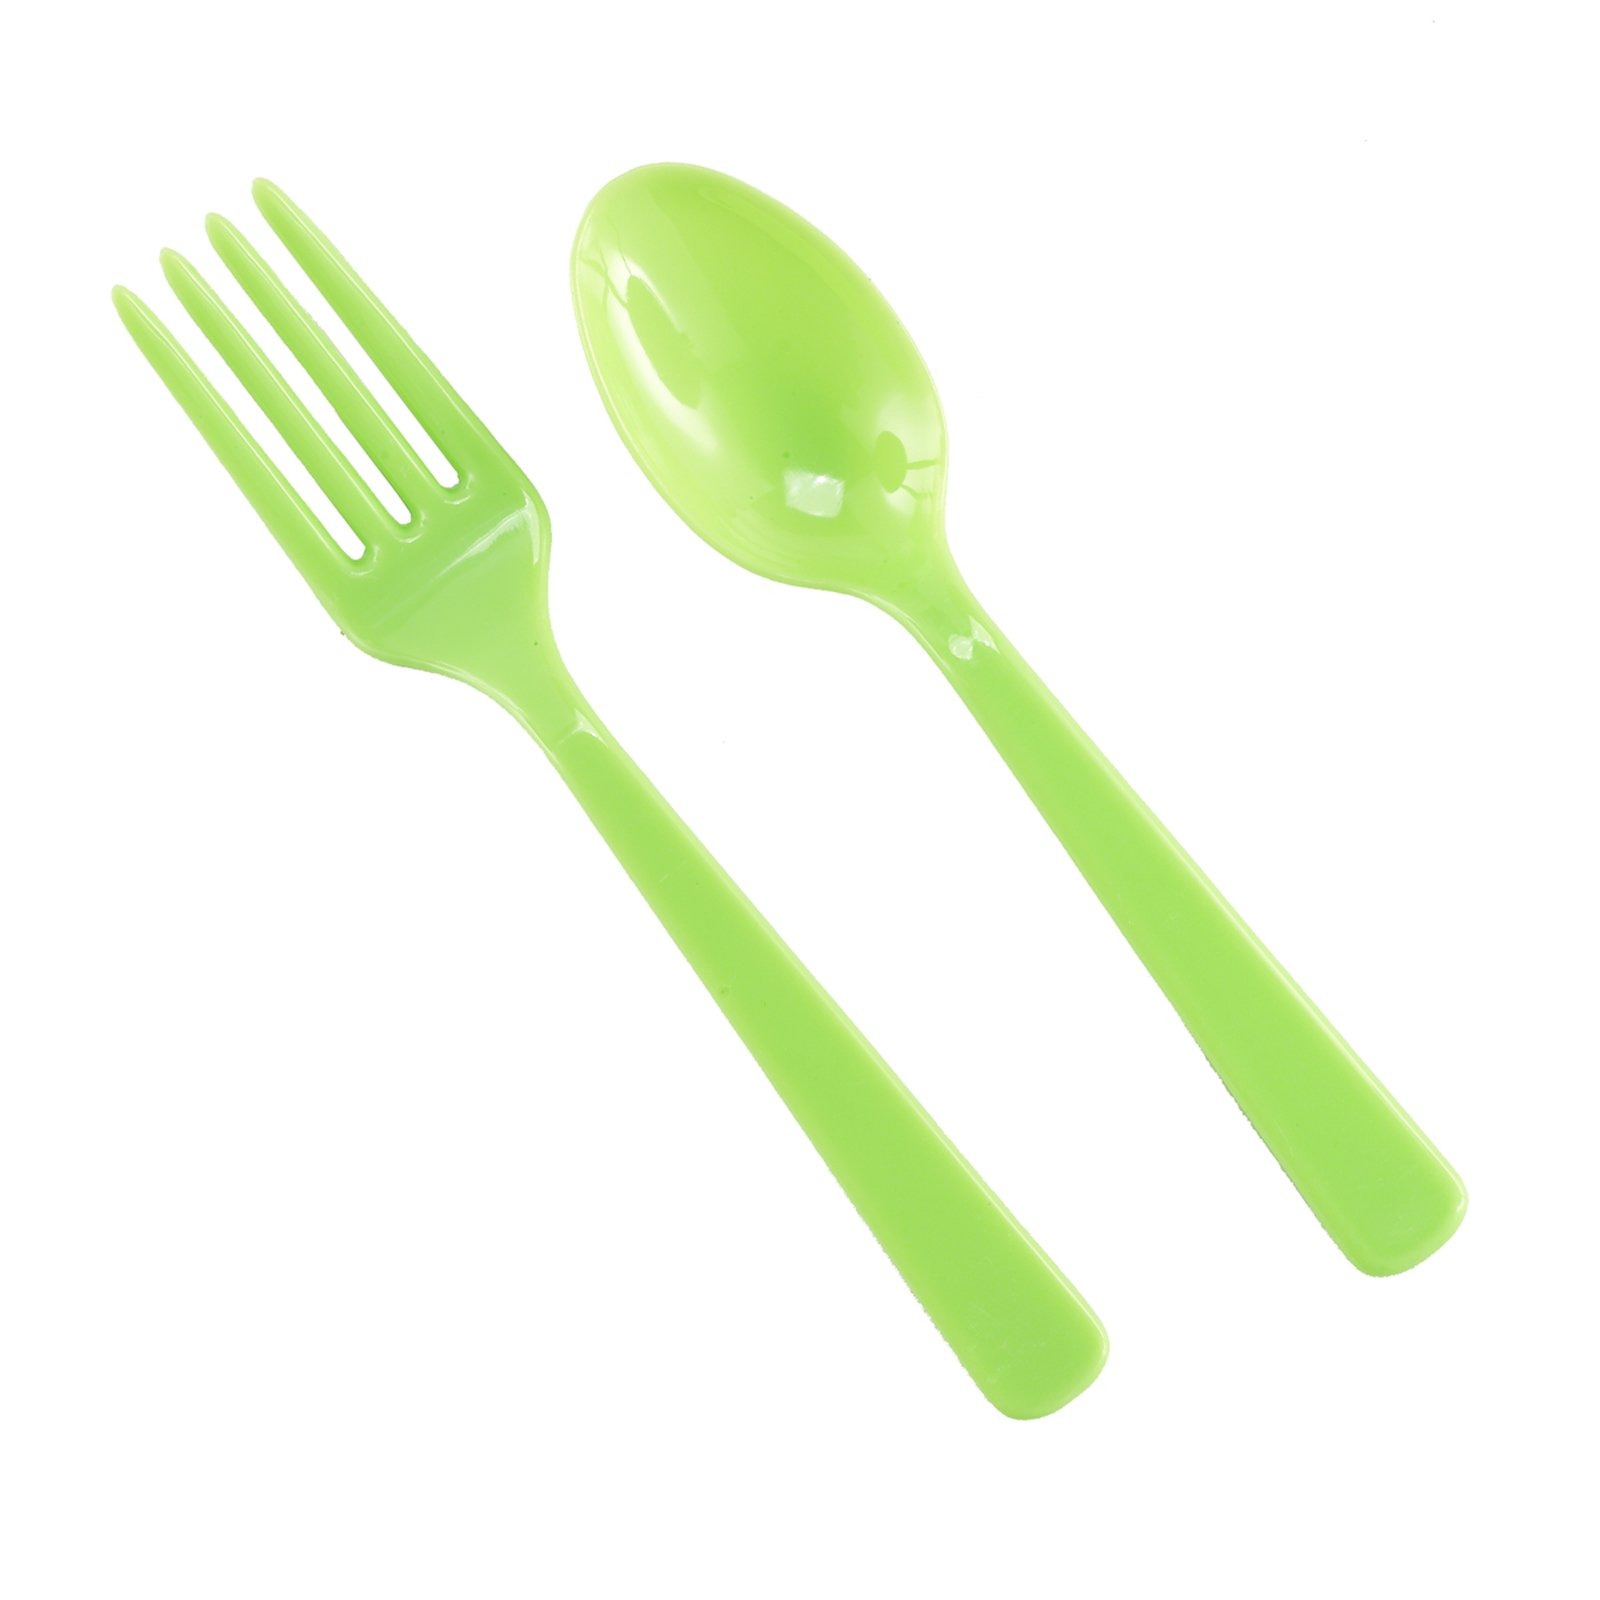 Forks & Spoons - Lime Green (8 each)